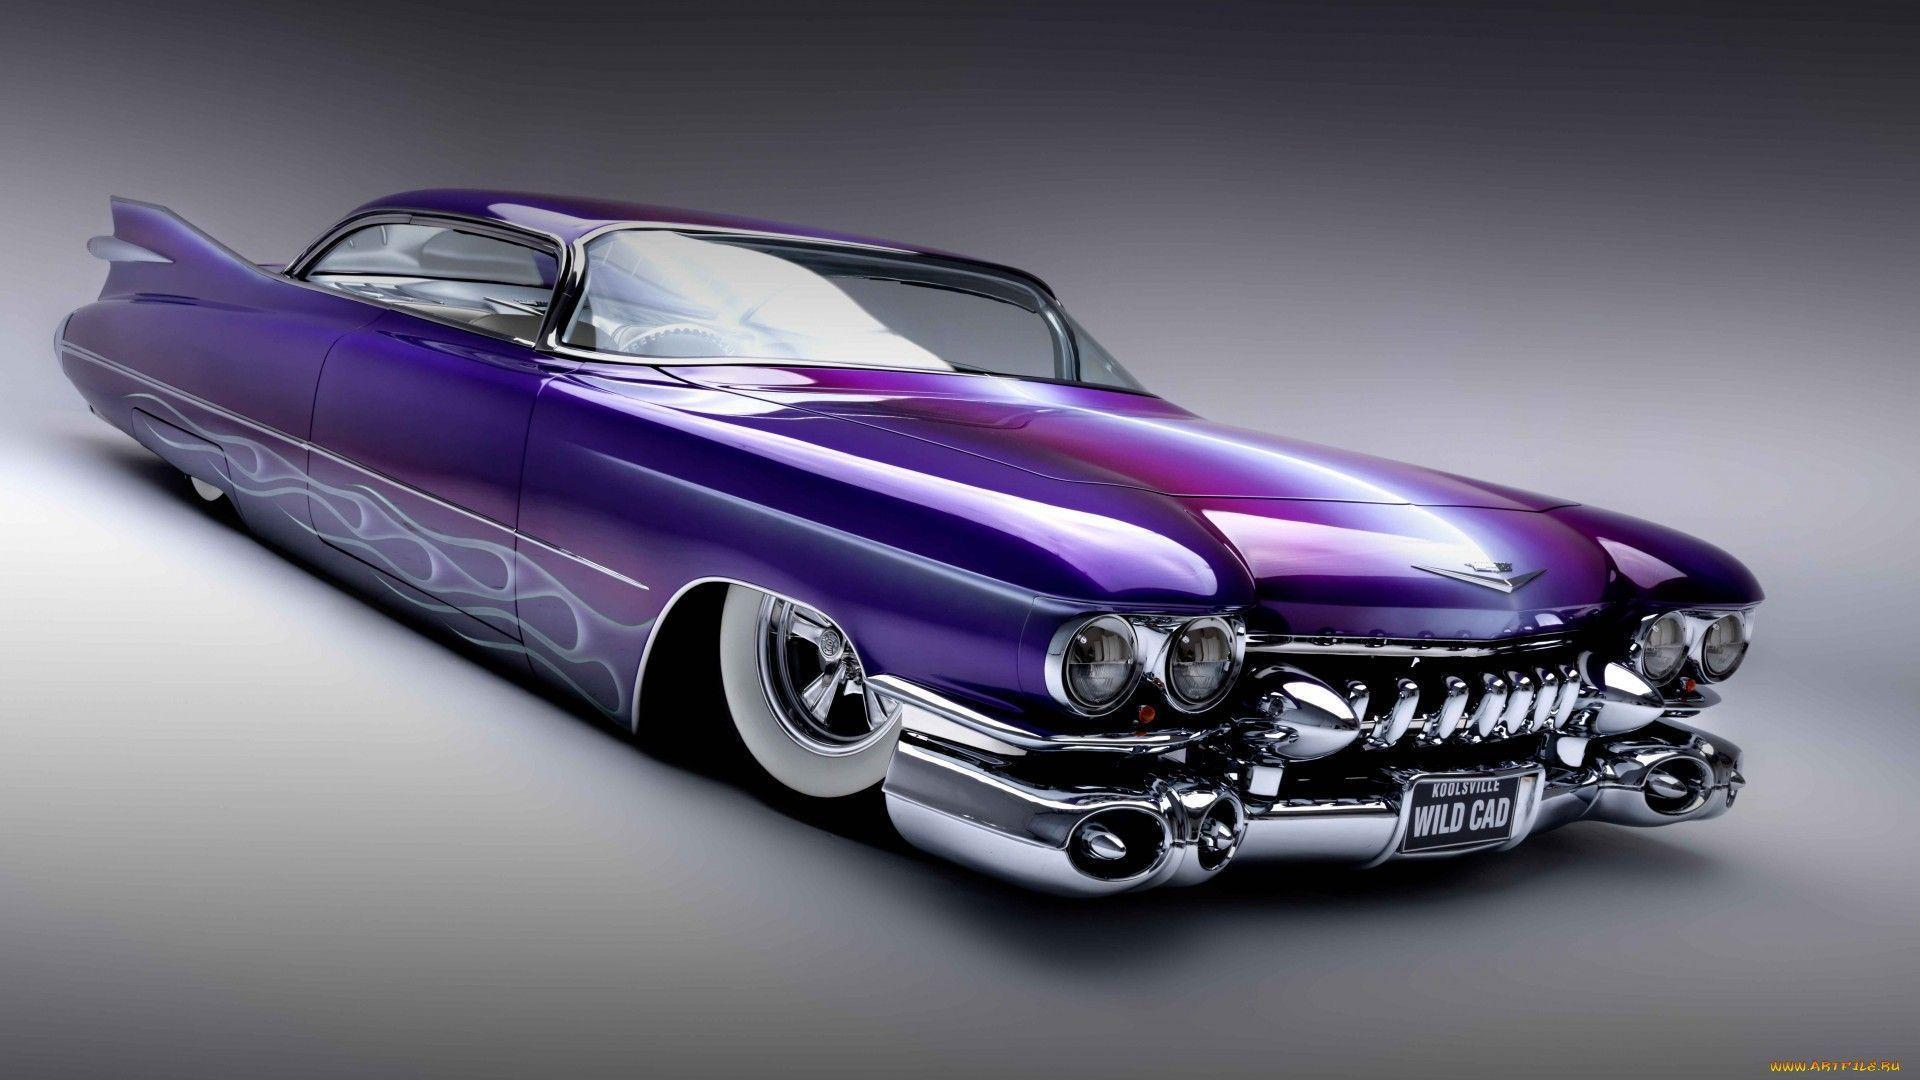 Lowrider Car Wallpapers